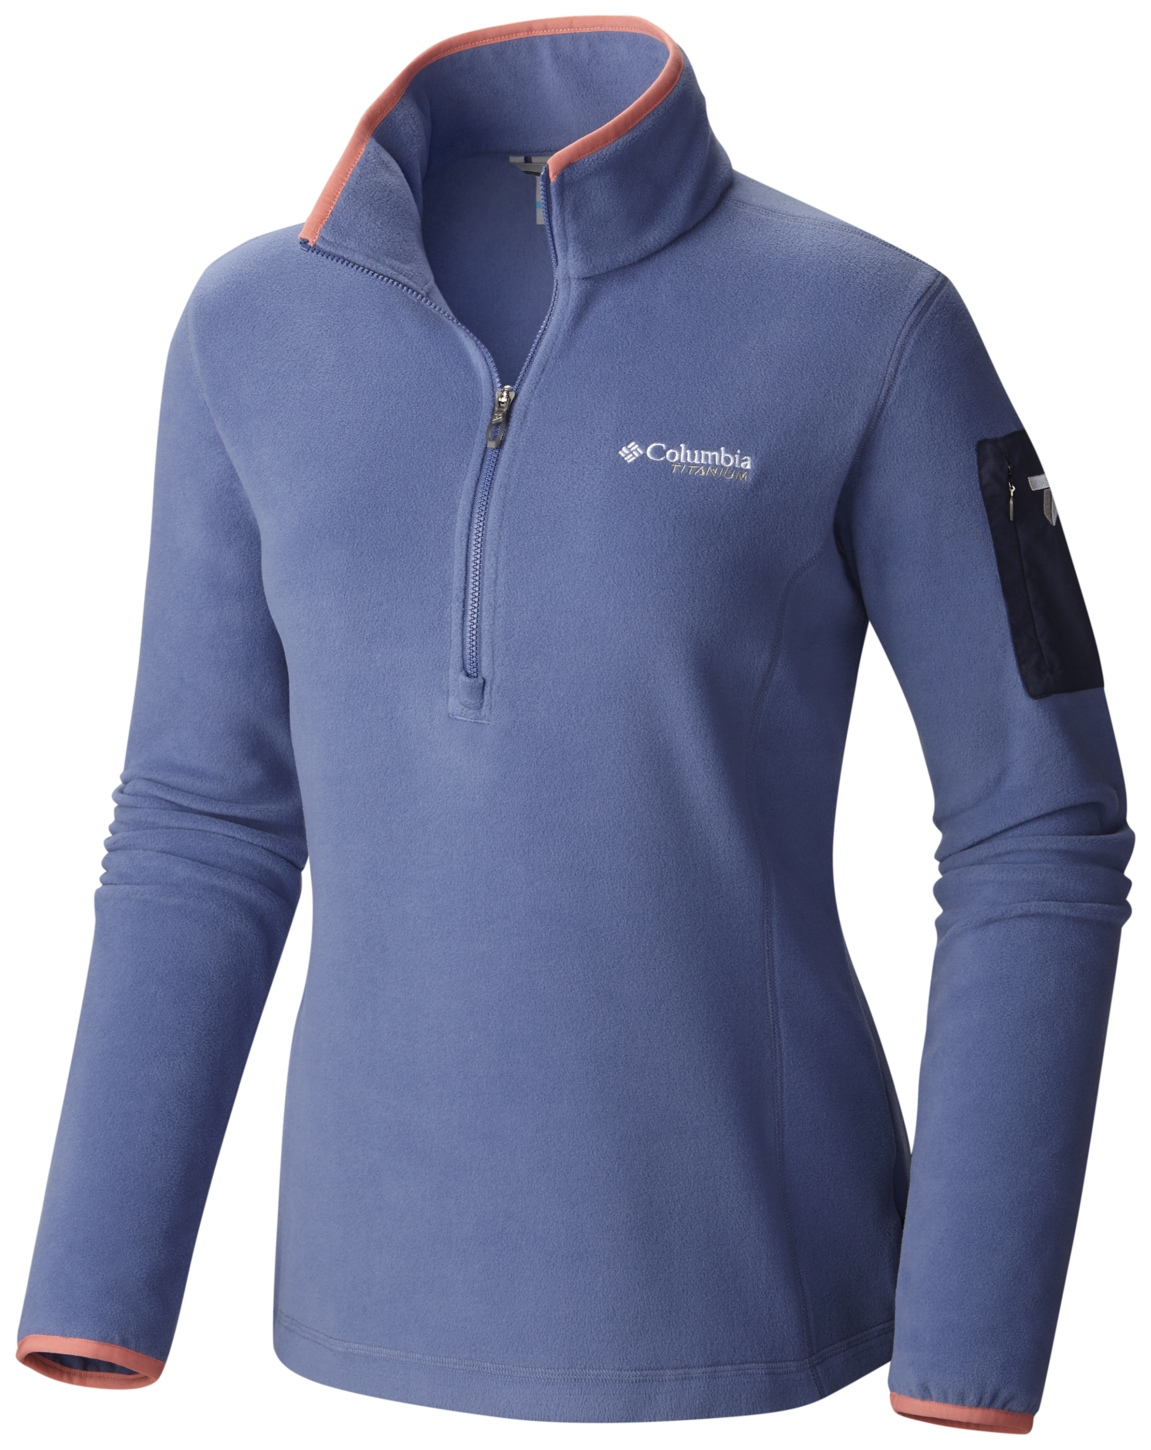 Columbia Women's Titan Pass 1.0 Half Zip Fleece Bluebell, Hot Coral-30